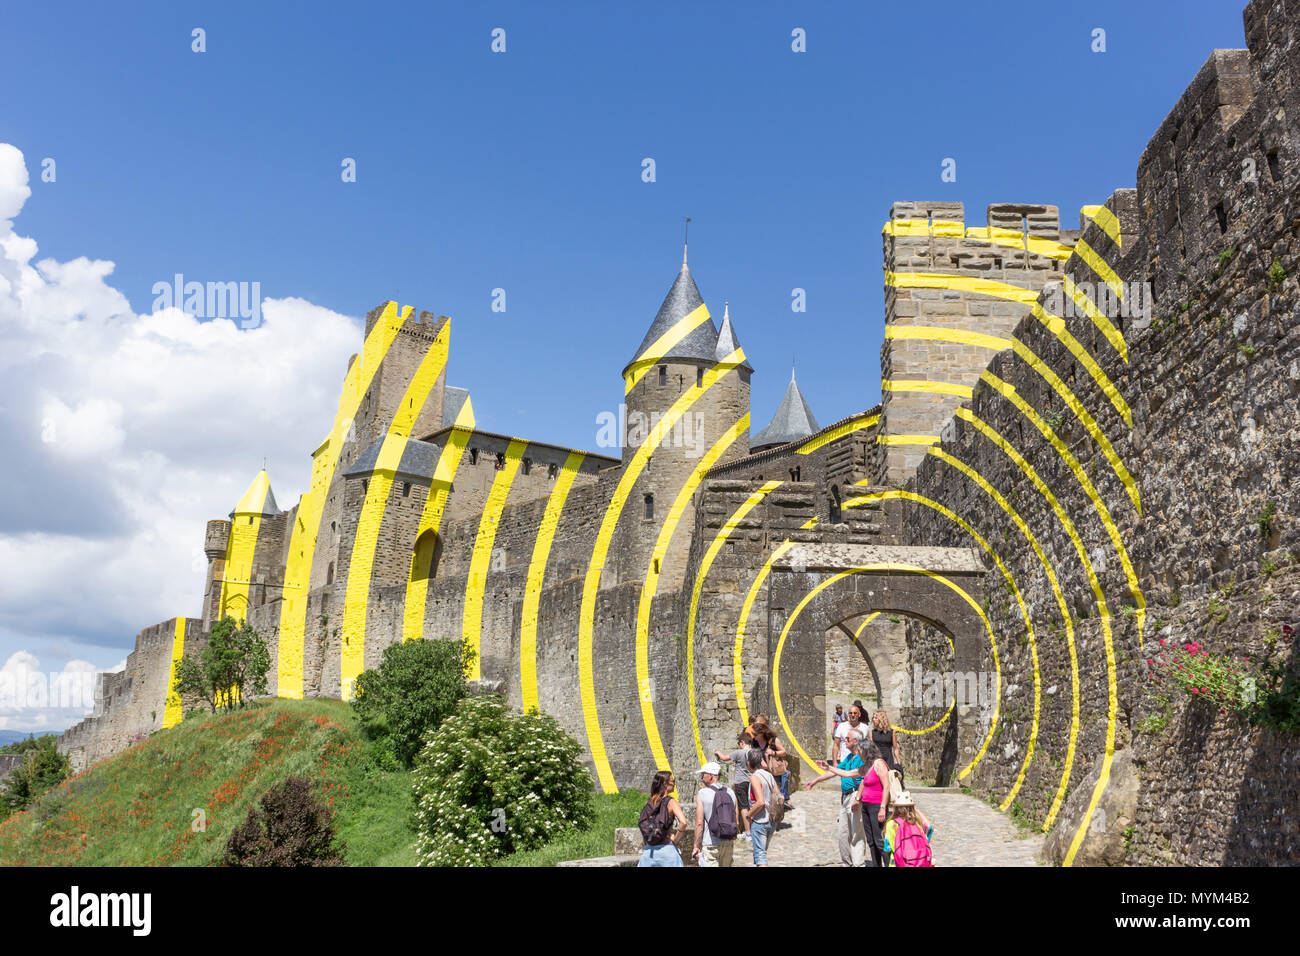 The Cité of Carcassonne, French department of Aude, Occitanie Region, France. The yellow paint is the Felice Varini, project of concentric yellow circ - Stock Image